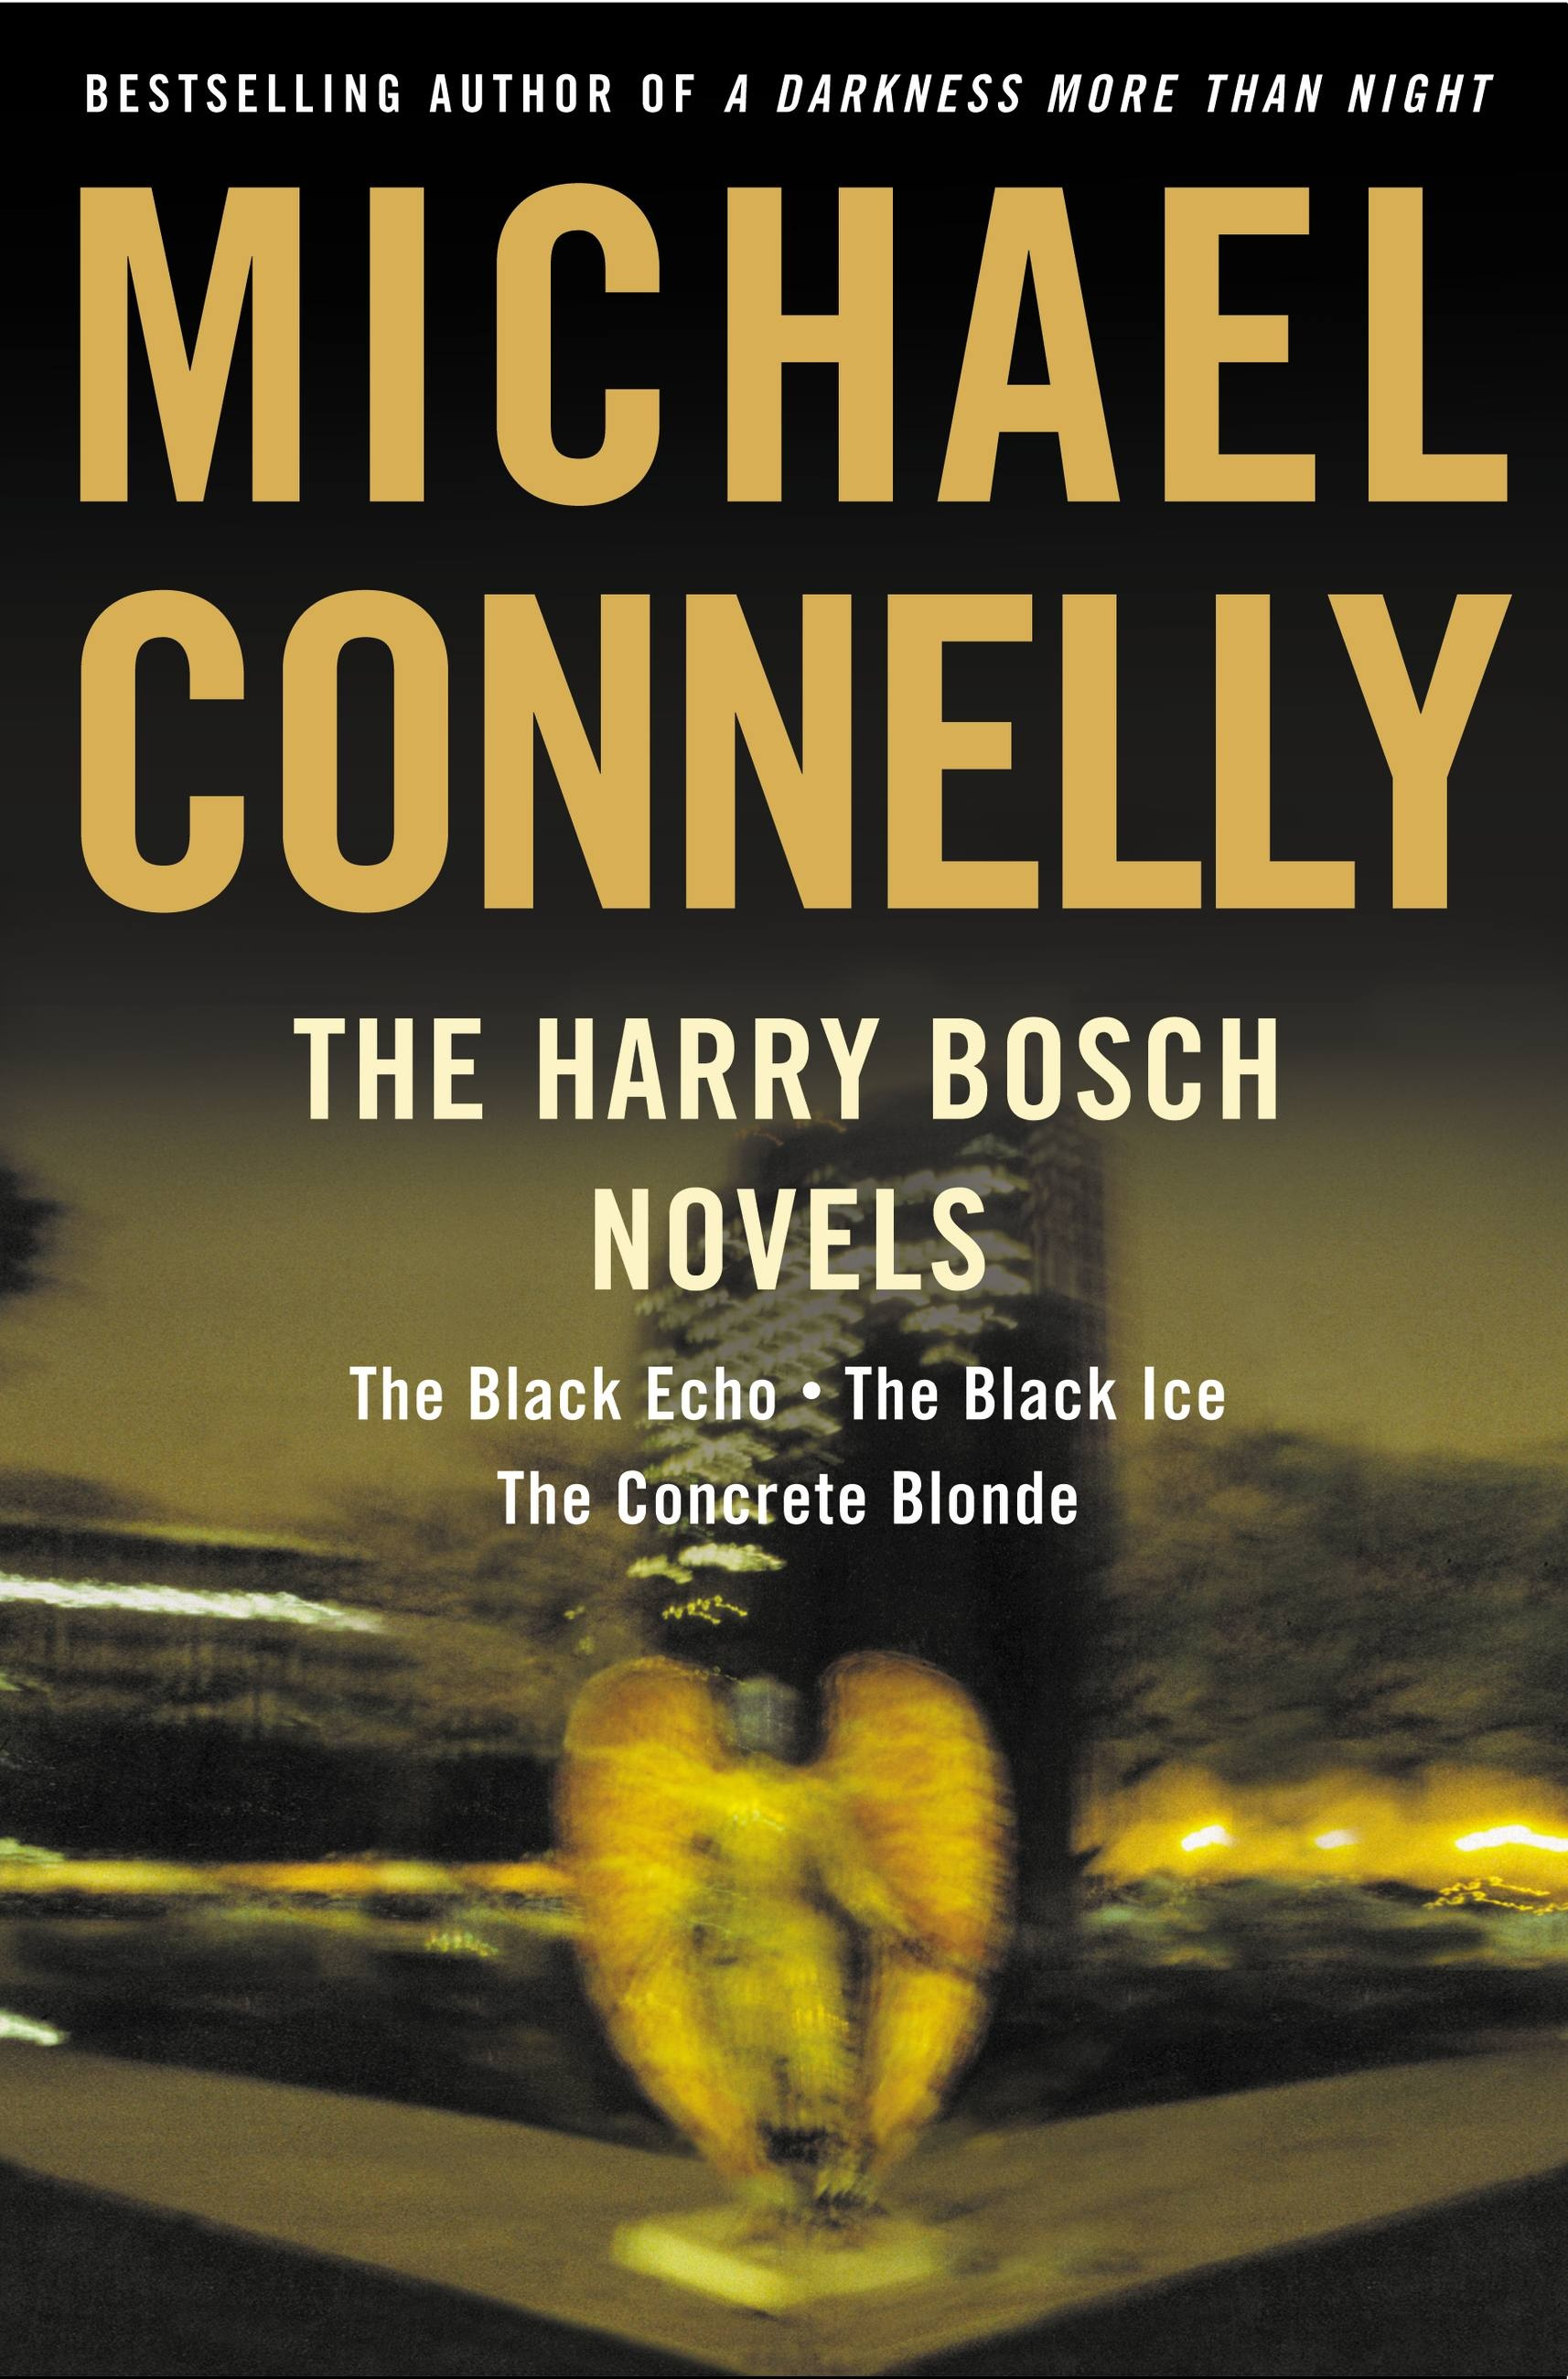 Harry Bosch Novels, The